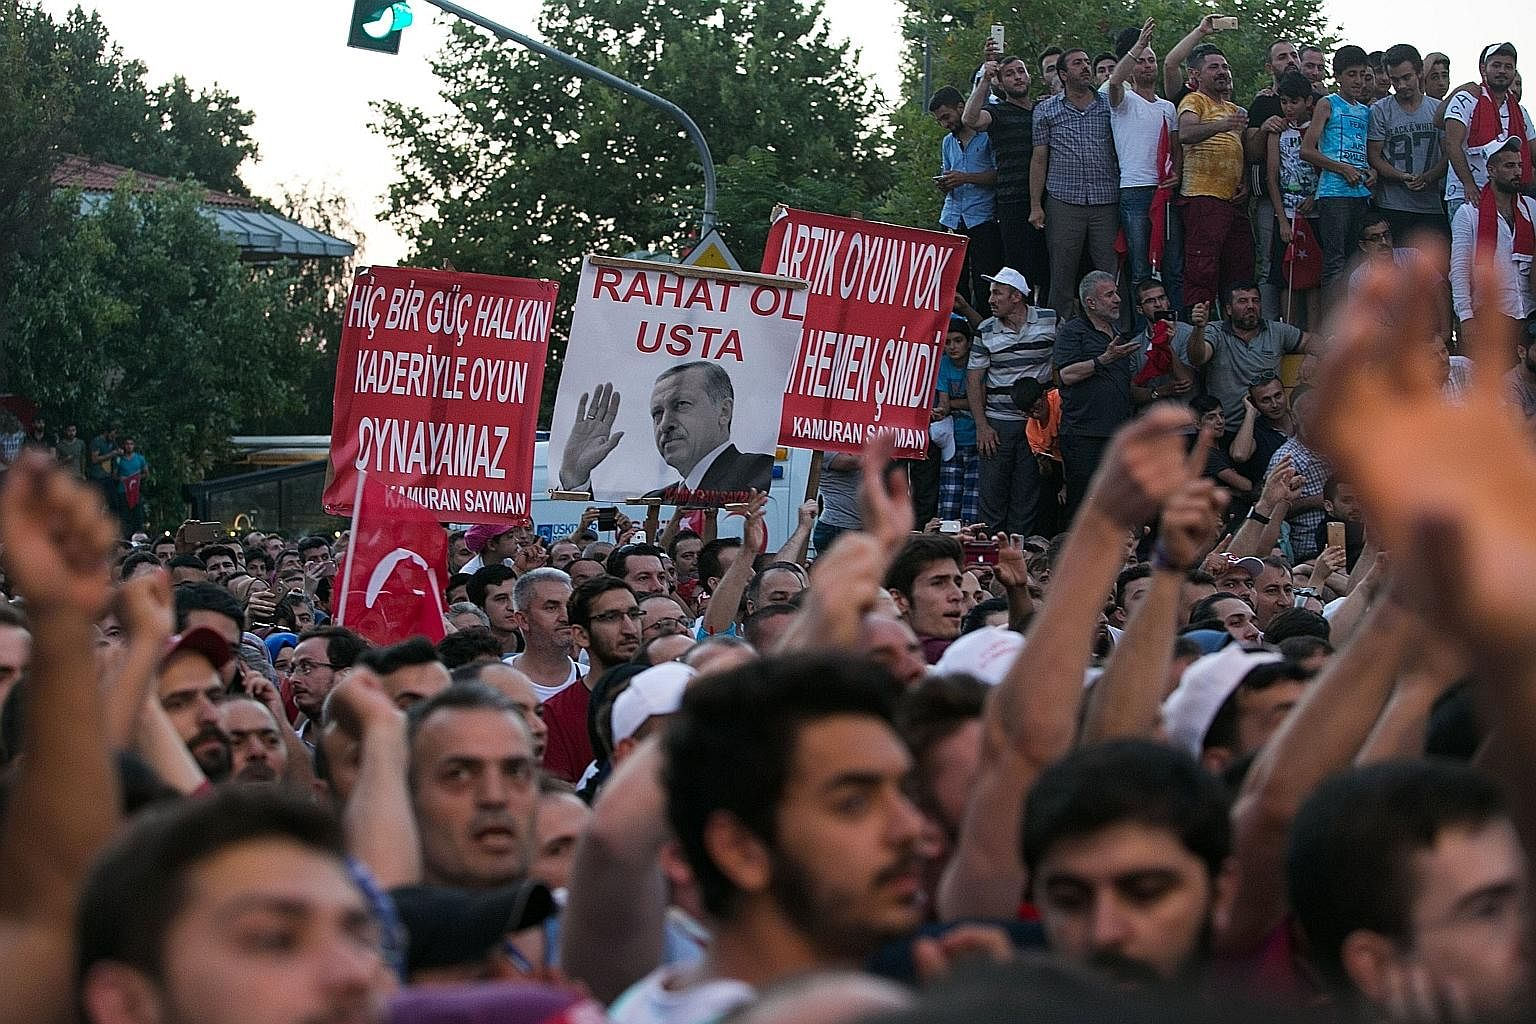 Pro-Erdogan supporters at a rally near the Turkish President's house in Istanbul last Saturday after the Turkish authorities wrested back control of Ataturk airport.